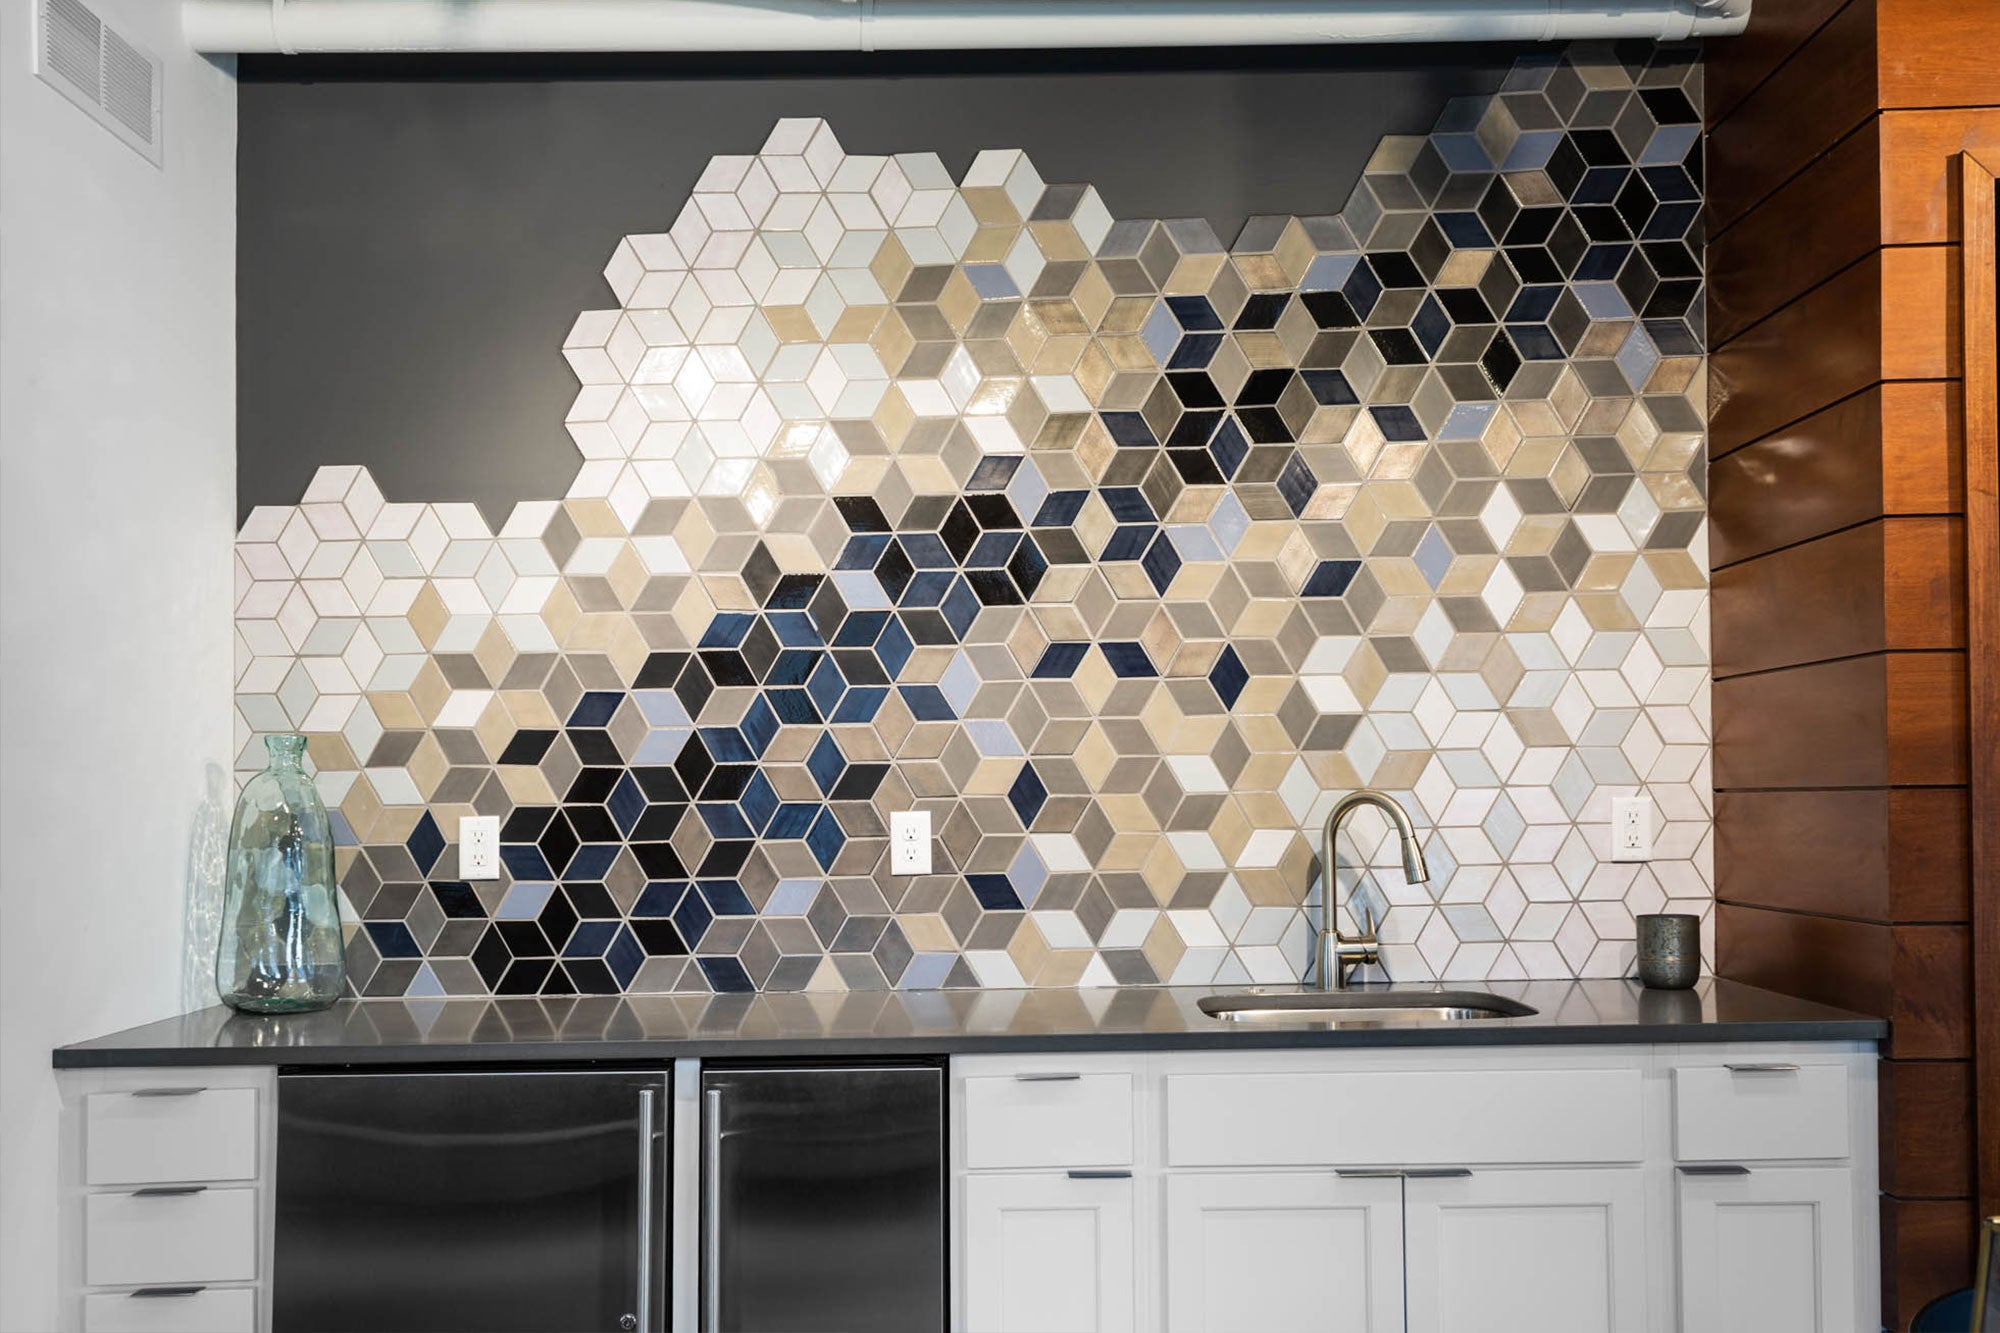 Mosaic Ceramic Tile Backsplash